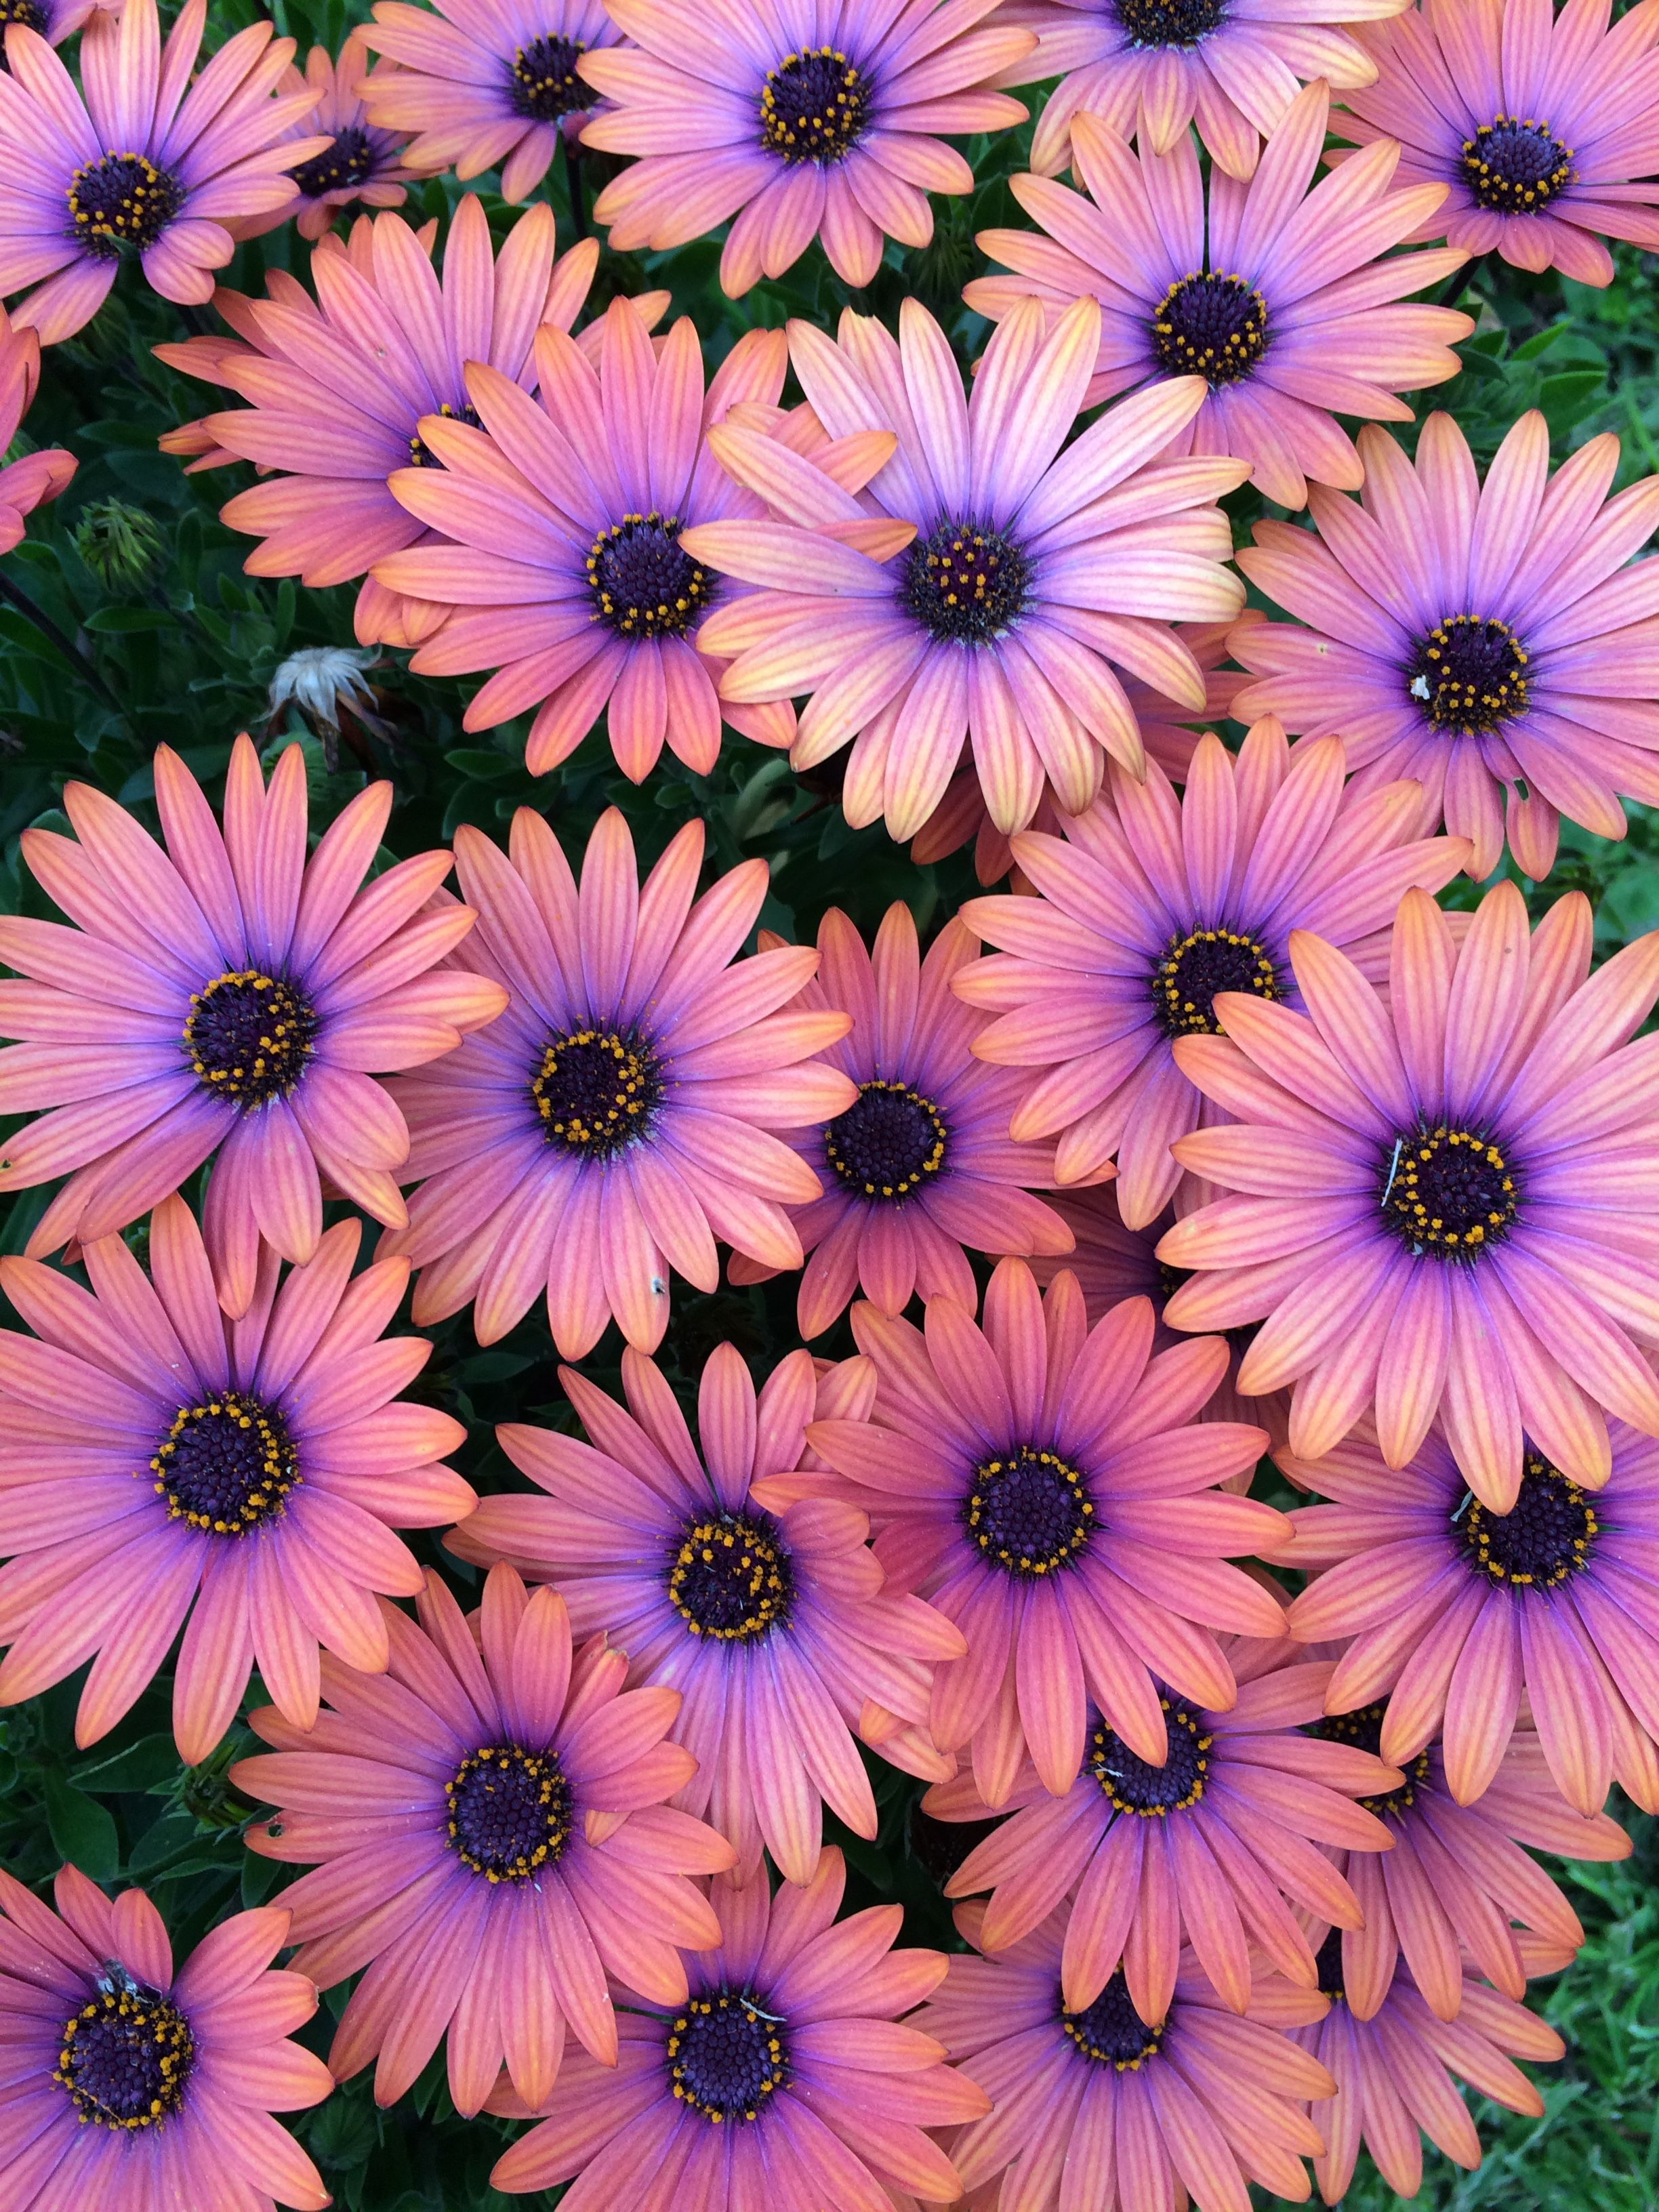 Mum Mum Flower Aesthetic Beautiful Flowers Pictures Flowers Photography